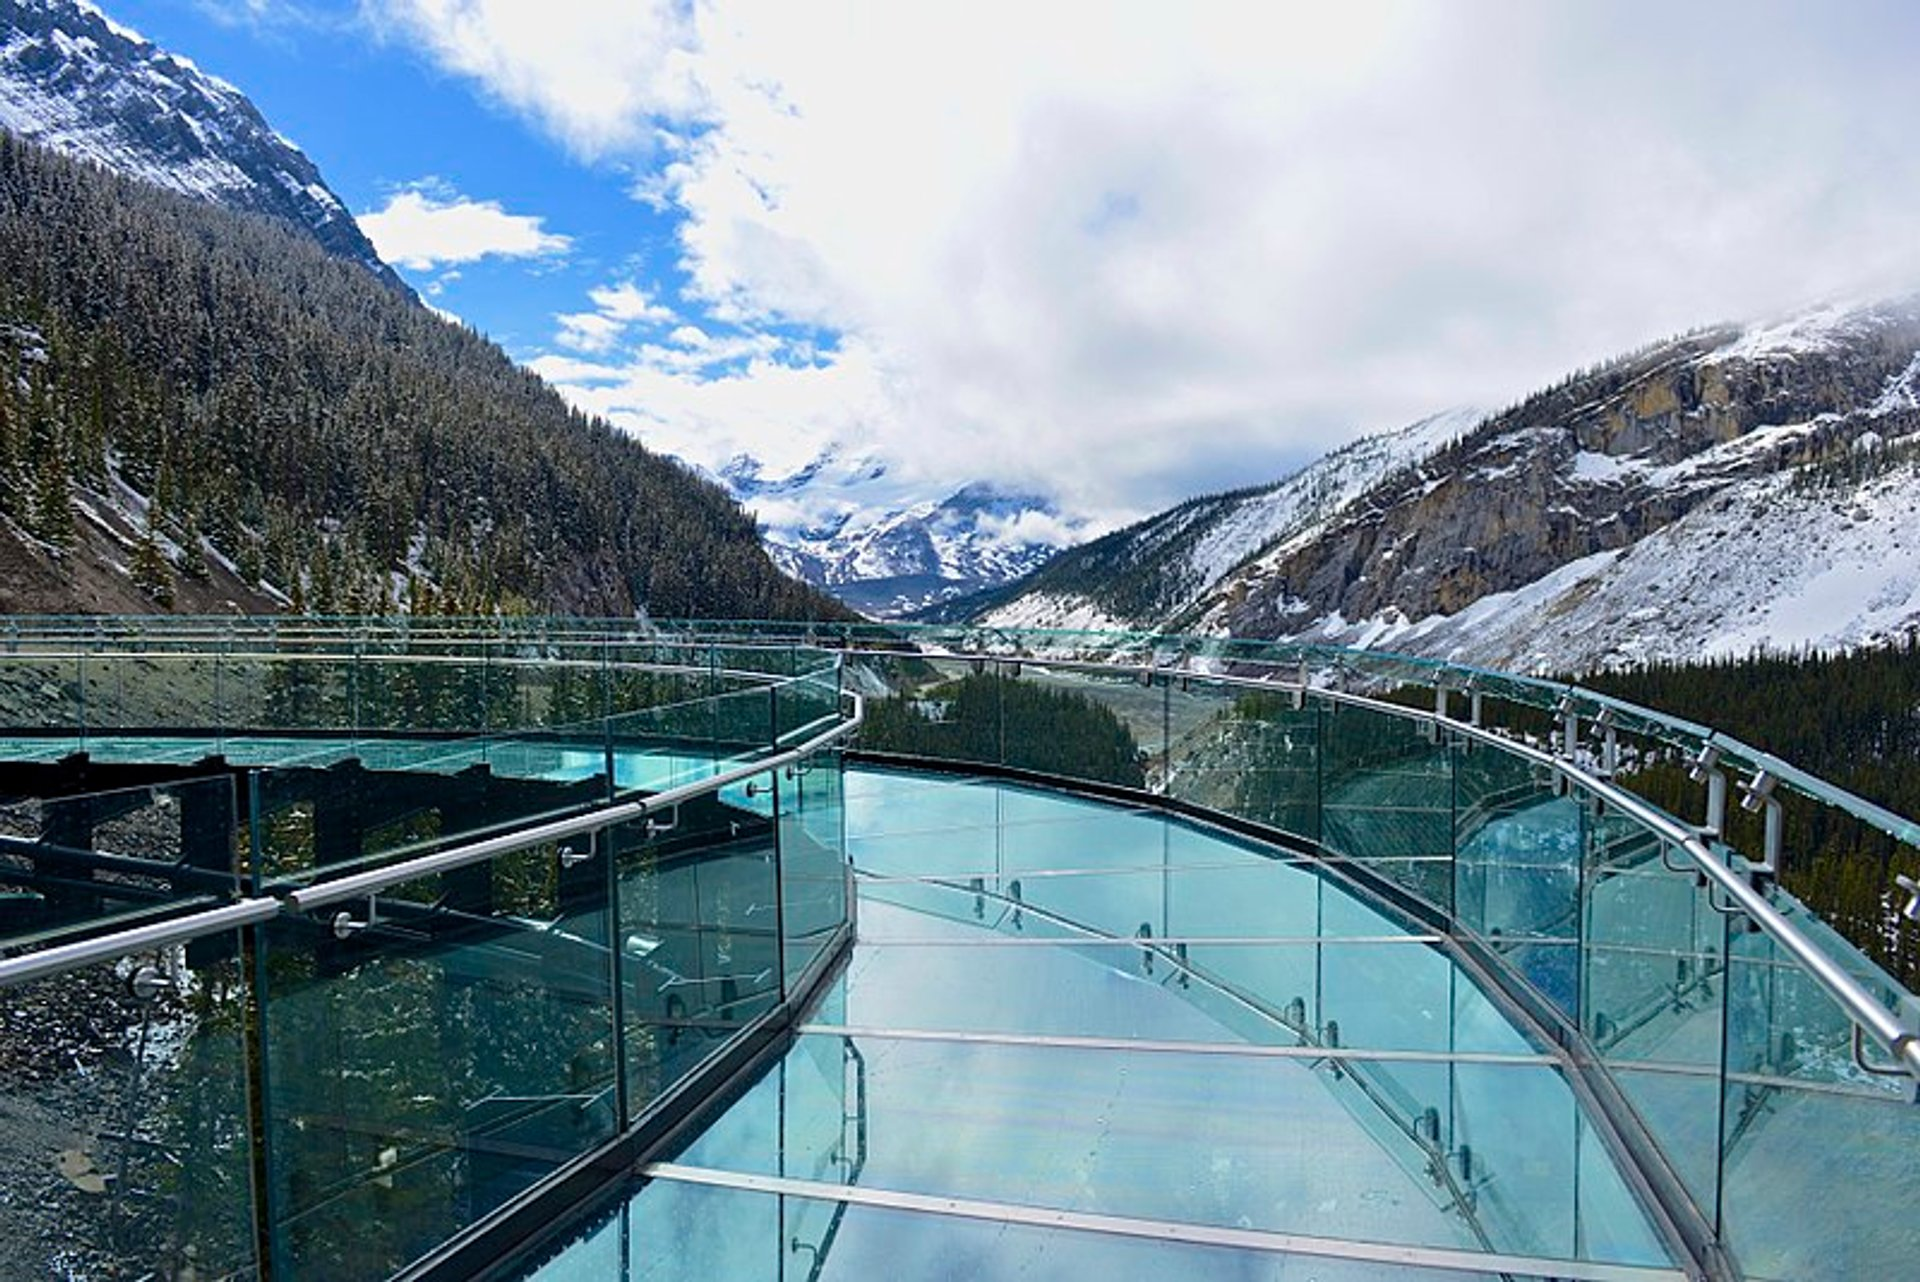 Glacier Skywalk in Banff & Jasper National Parks 2020 - Best Time